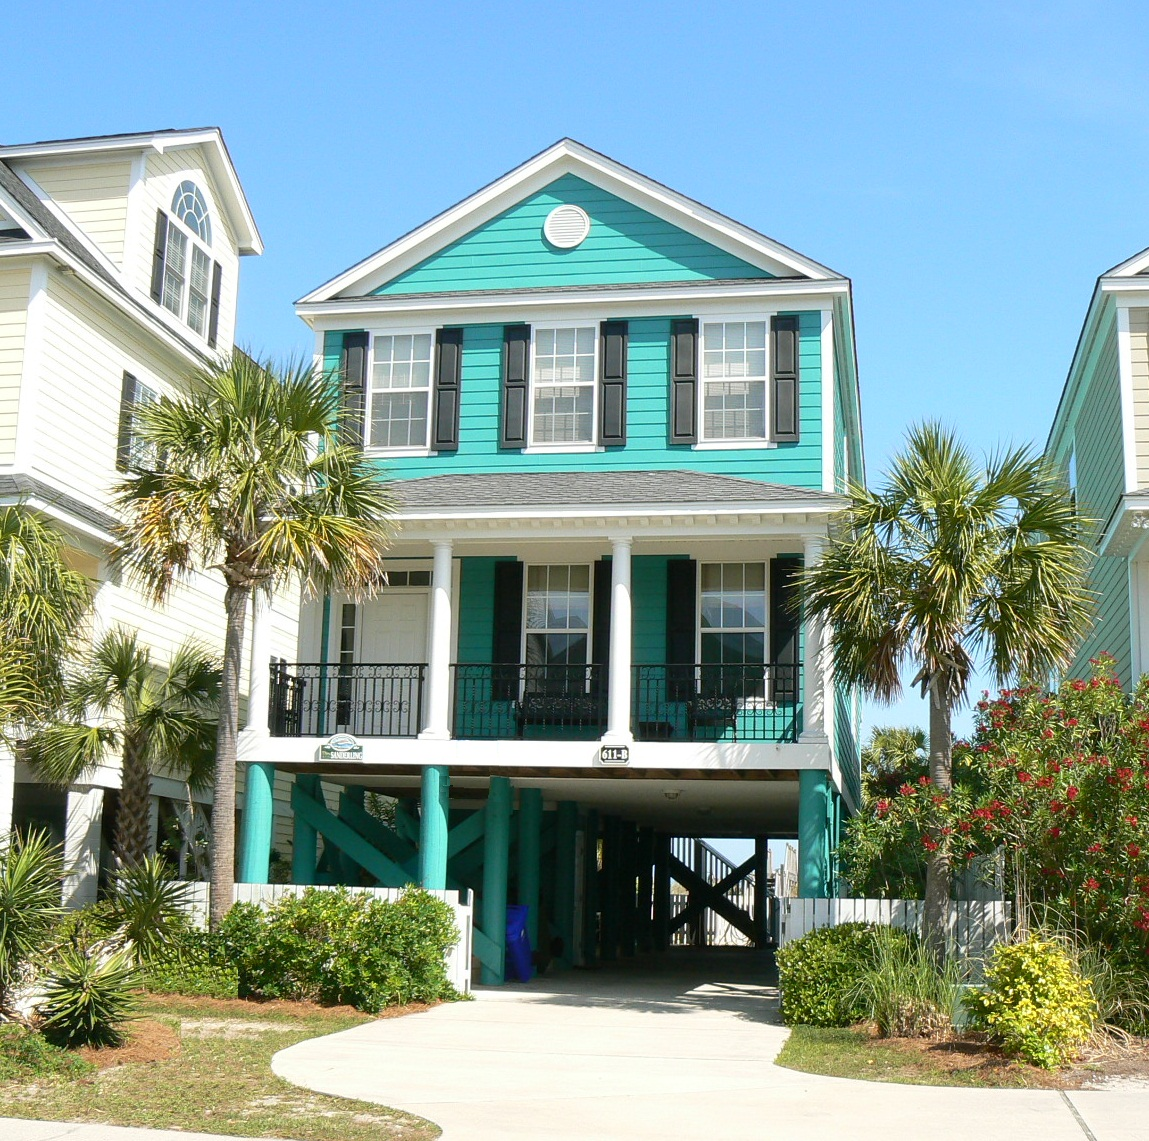 Beach Houses For Rent In Ocean City: Sanderling 611B N. Ocean Blvd., Surfside Beach, SC 29575